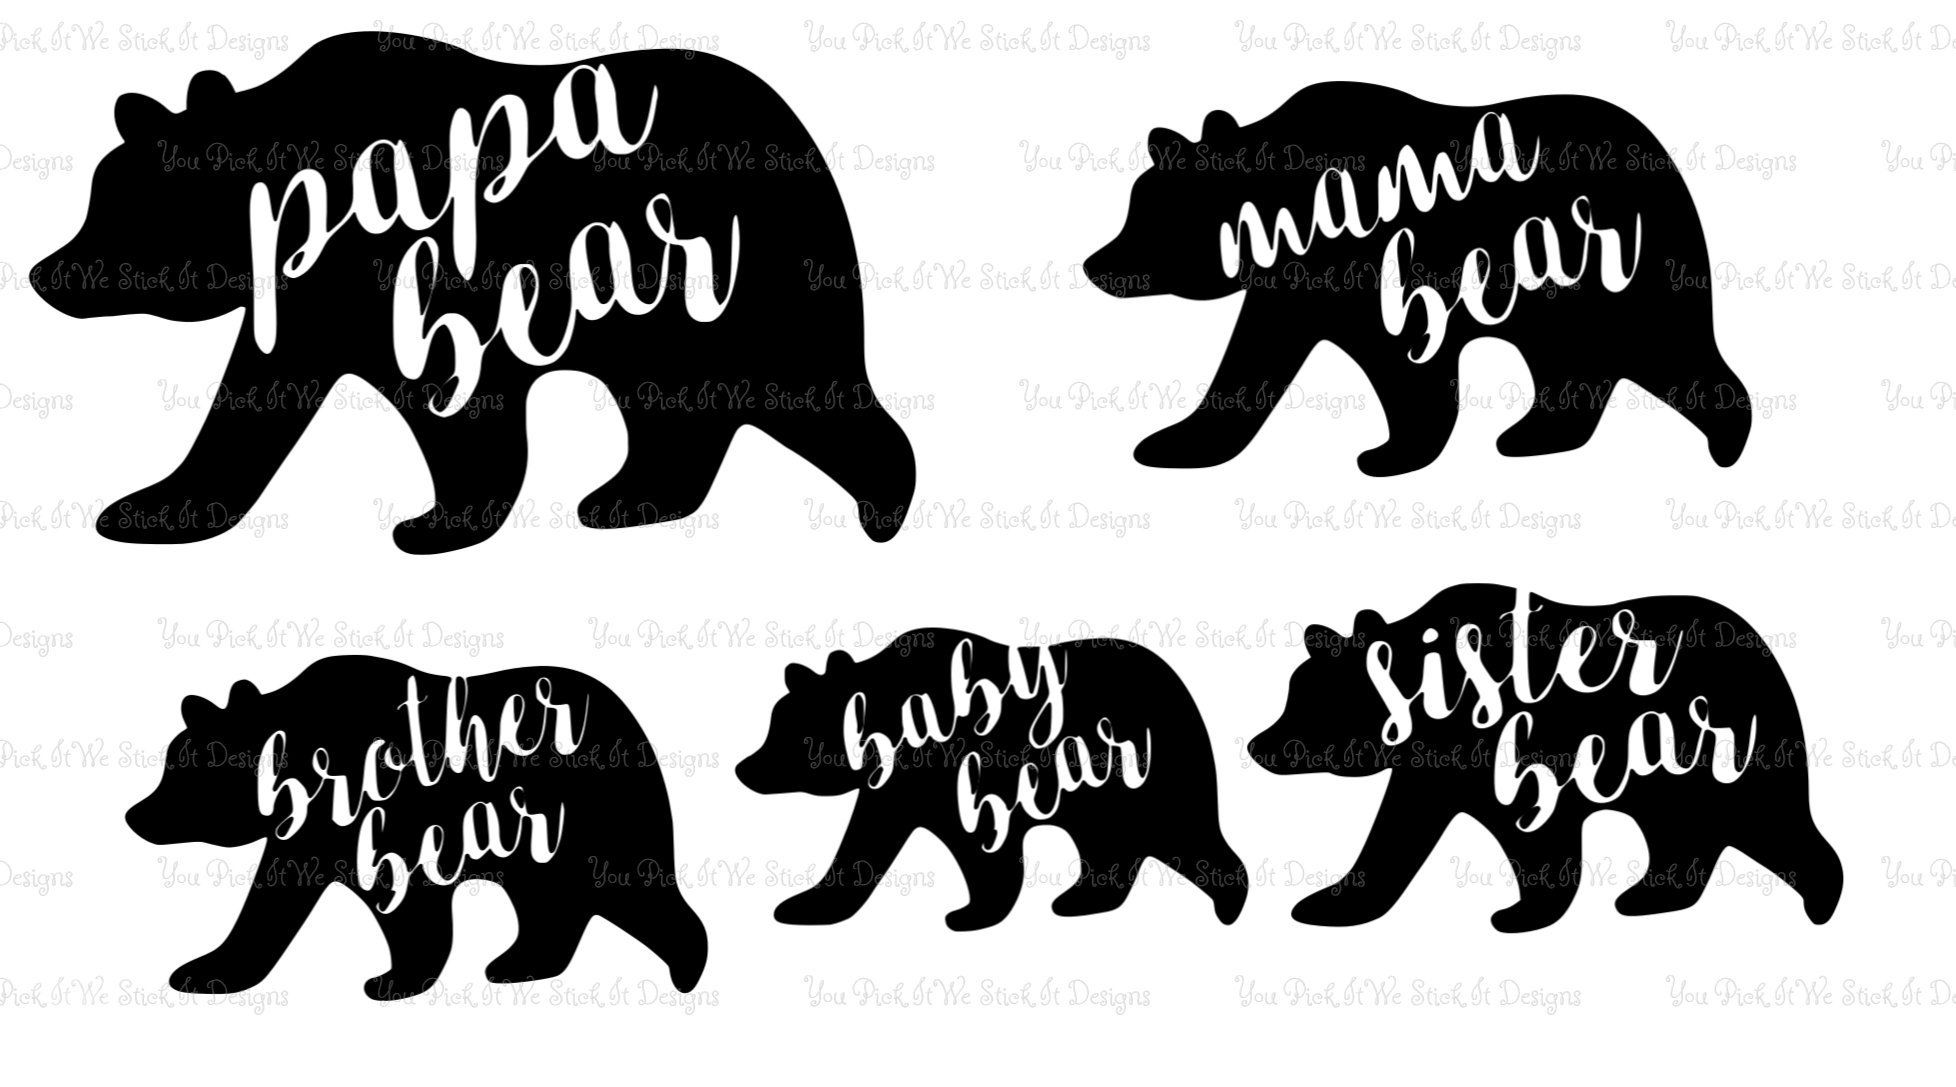 """Brother Bear side by side bumper sticker wall decor vinyl decal 5/"""" x 4/"""""""